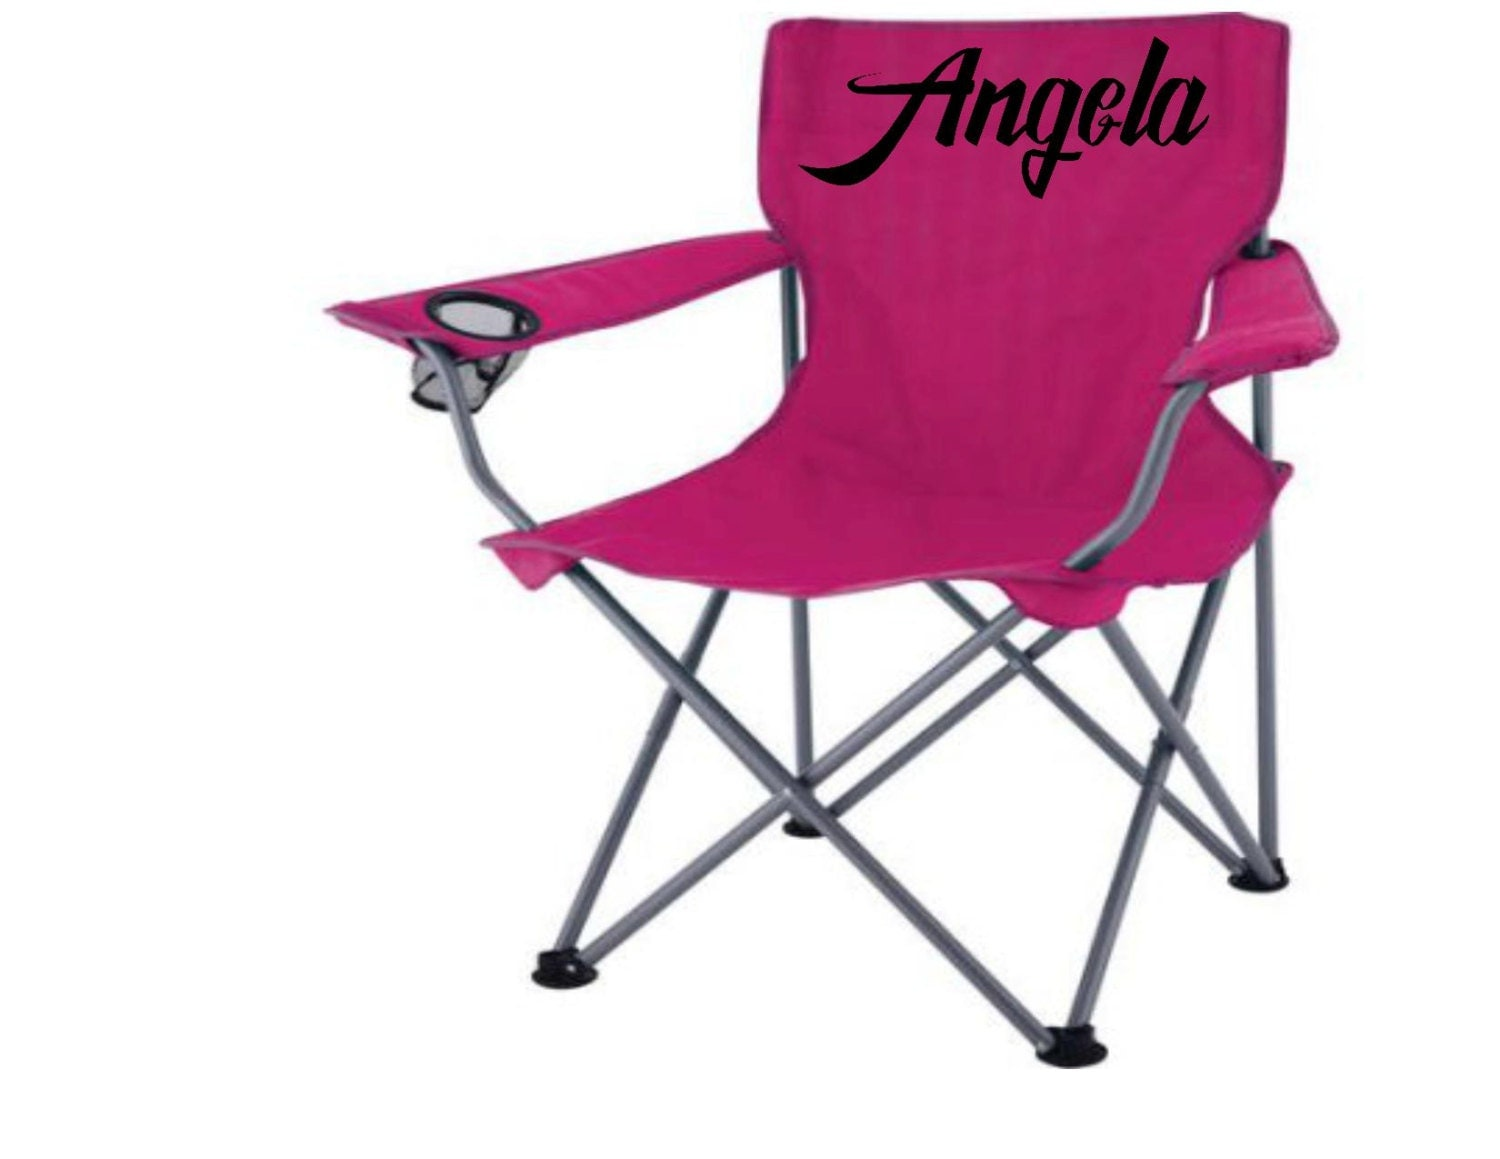 Custom folding chairs Monograms and sport designs Beach